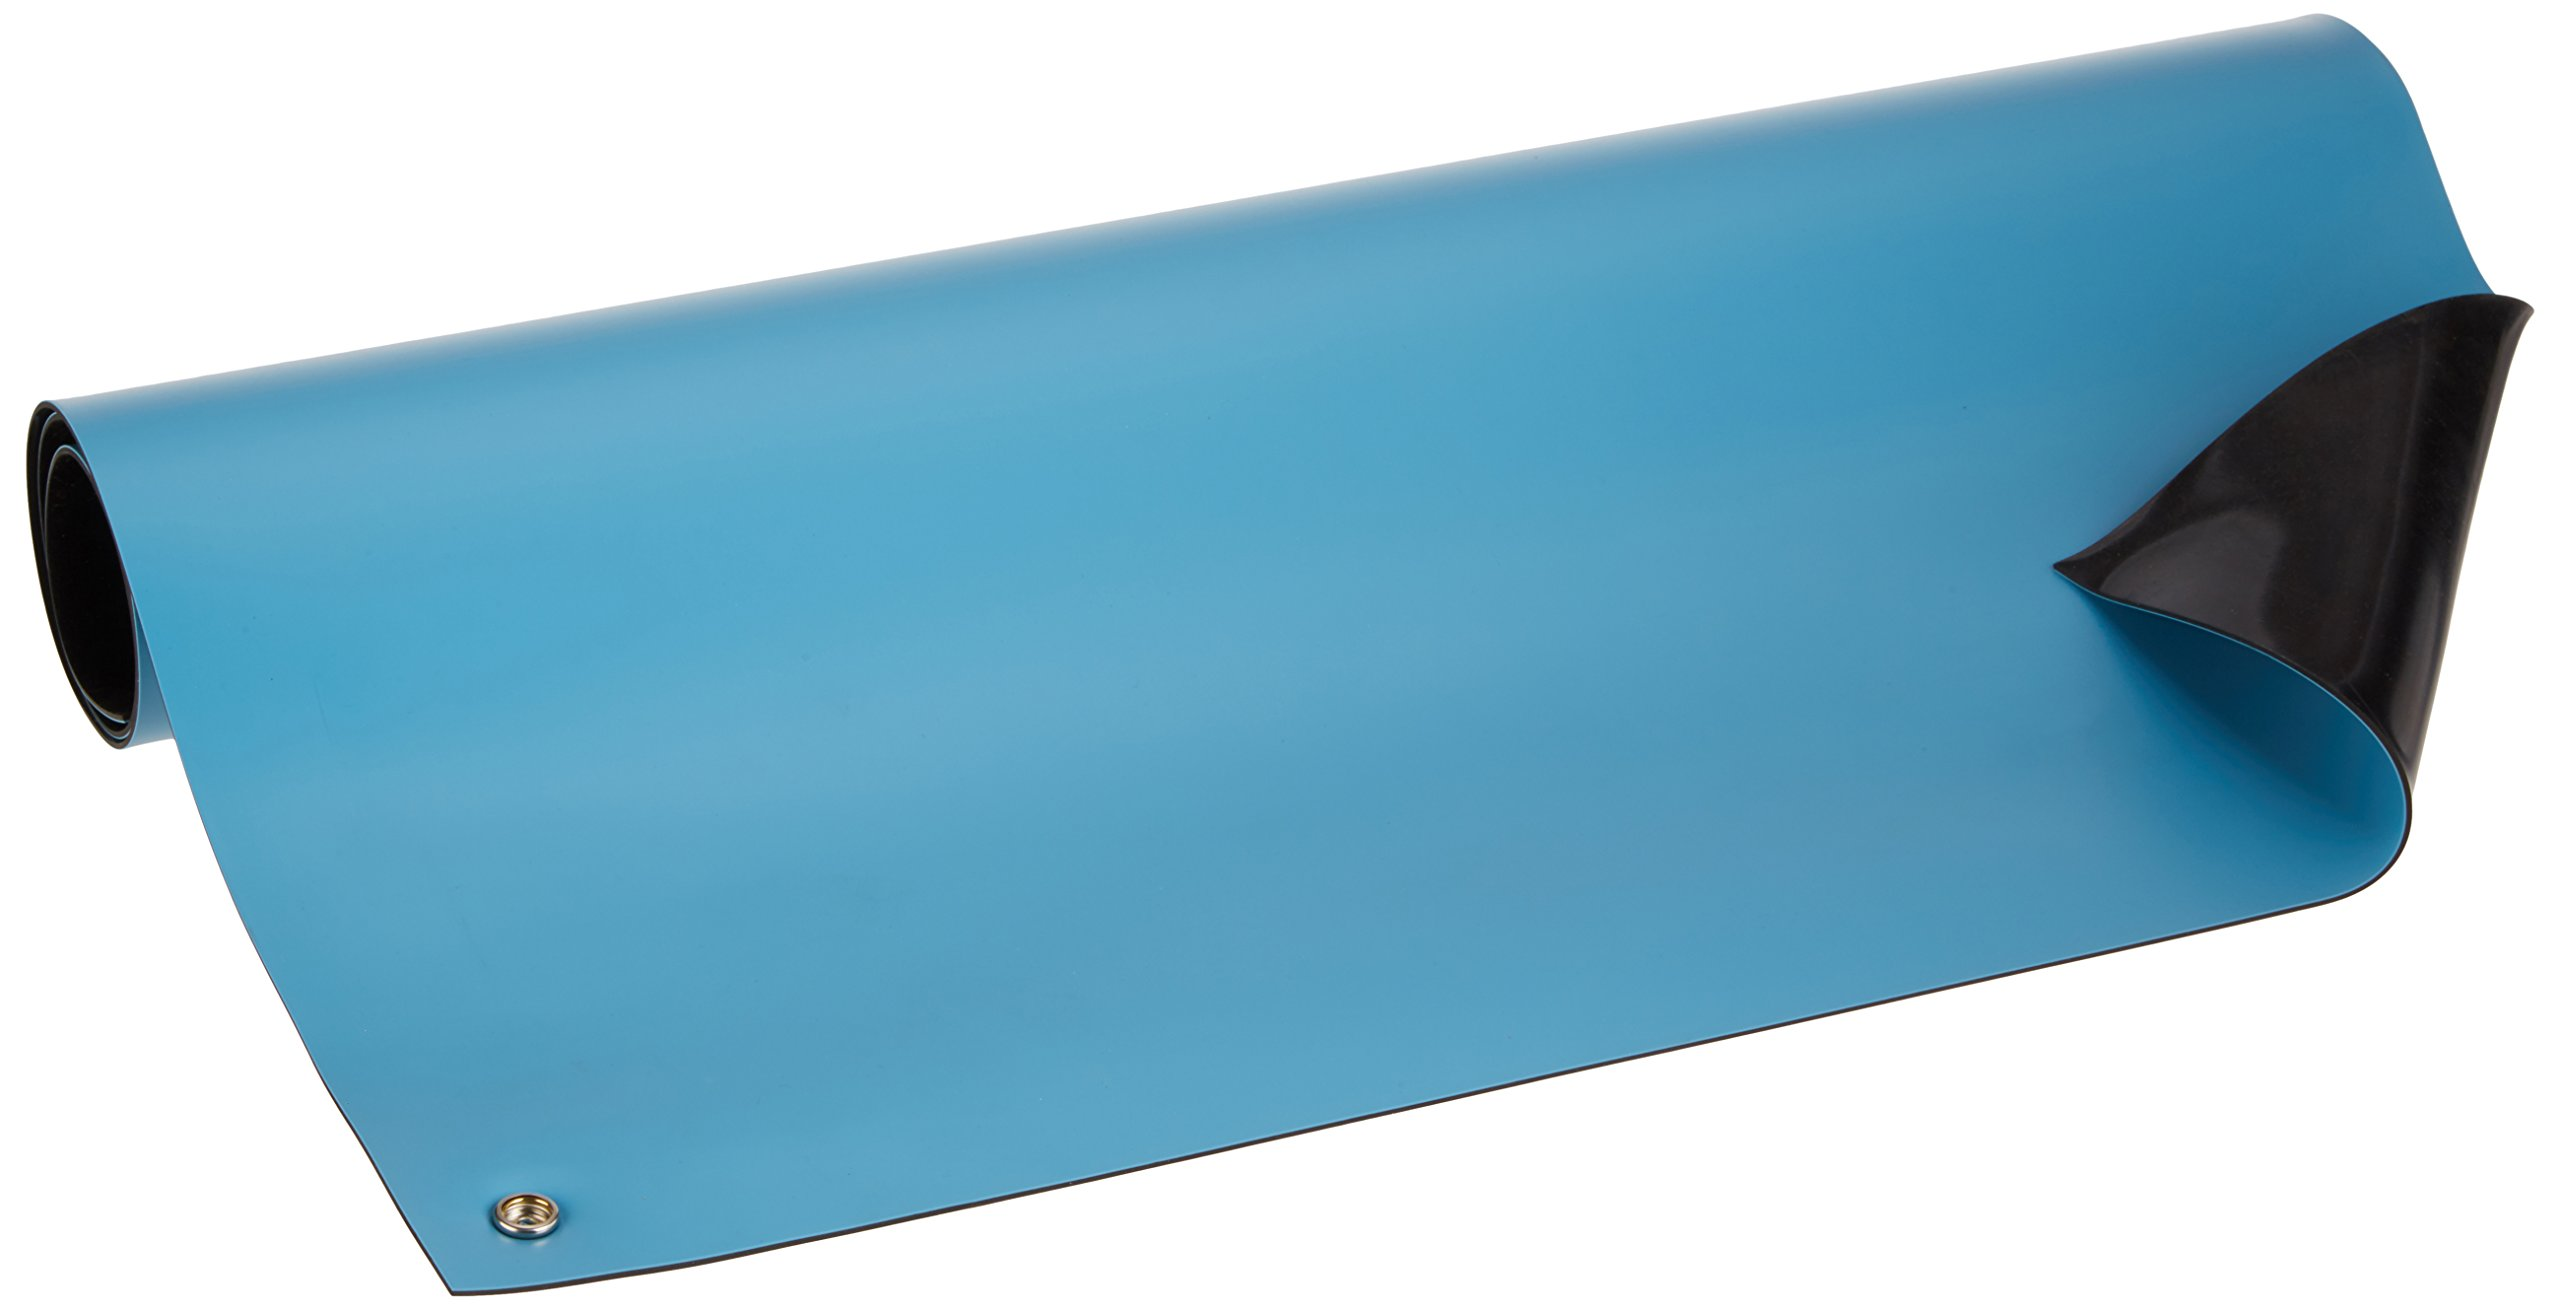 Bertech ESD High Temperature Rubber Mat Kit with a Wrist Strap and Grounding Cord, 2' Wide x 3' Long x 0.08'' Thick, Blue by Bertech (Image #5)